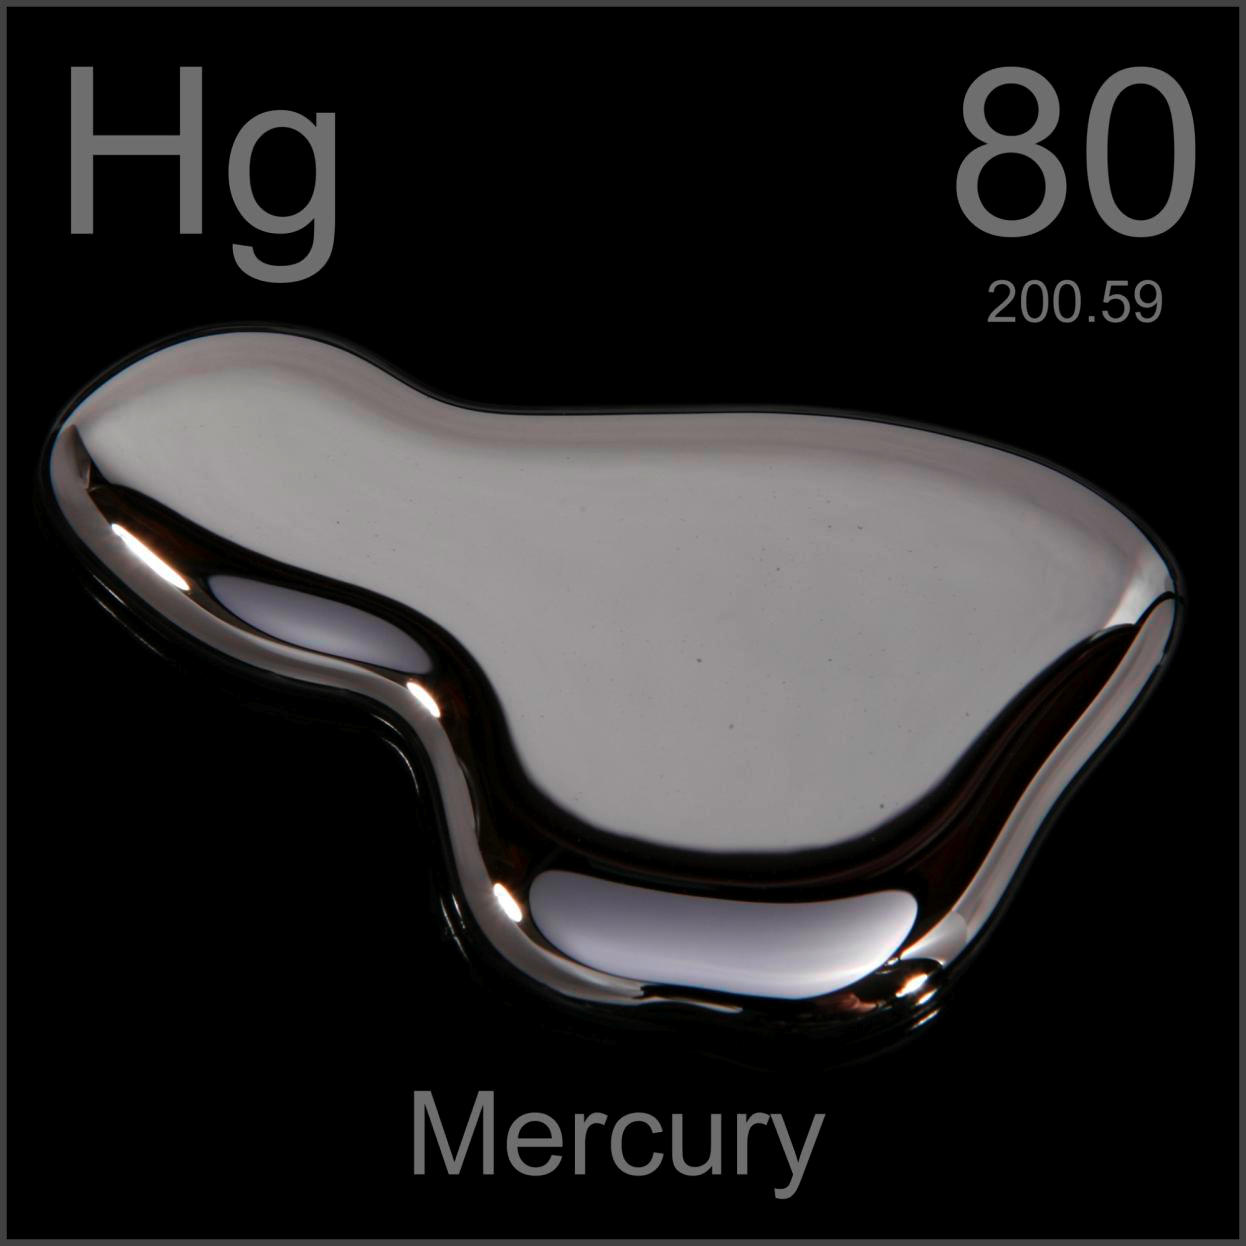 Mercury a powerful neuro toxin